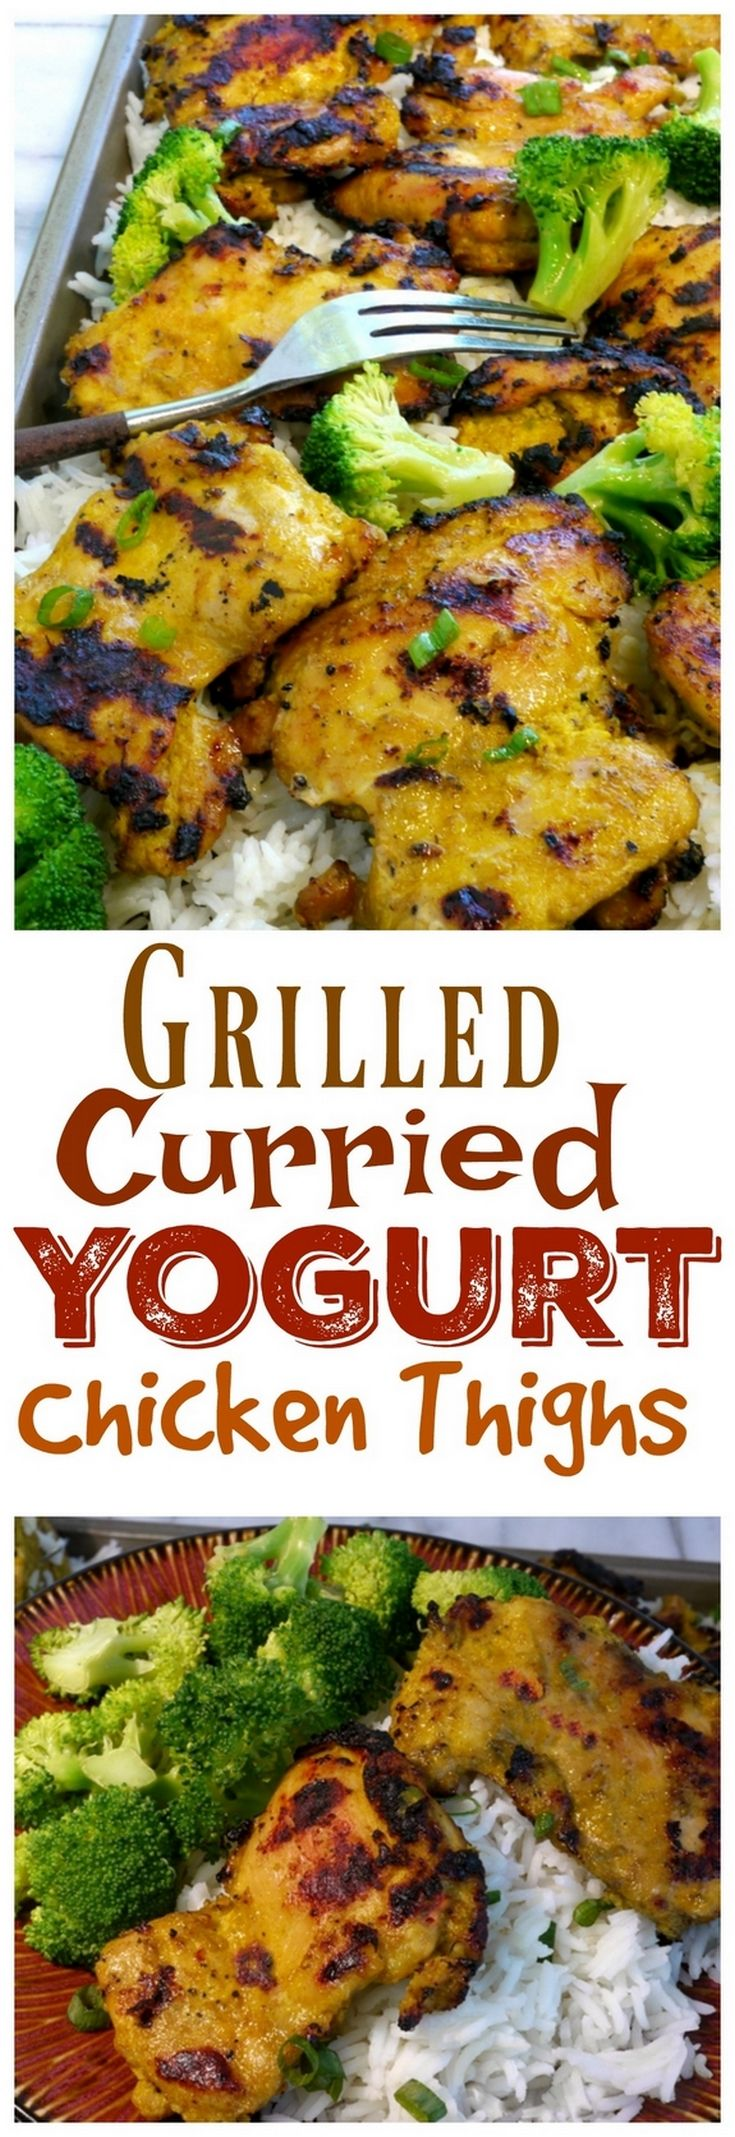 Jazz up your chicken with these Grilled Curried Yogurt Chicken Thighs. They add a new dimension and look to your regular grilled chicken recipe. Give it a try this week, from NoblePig.com. via @cmpollak1